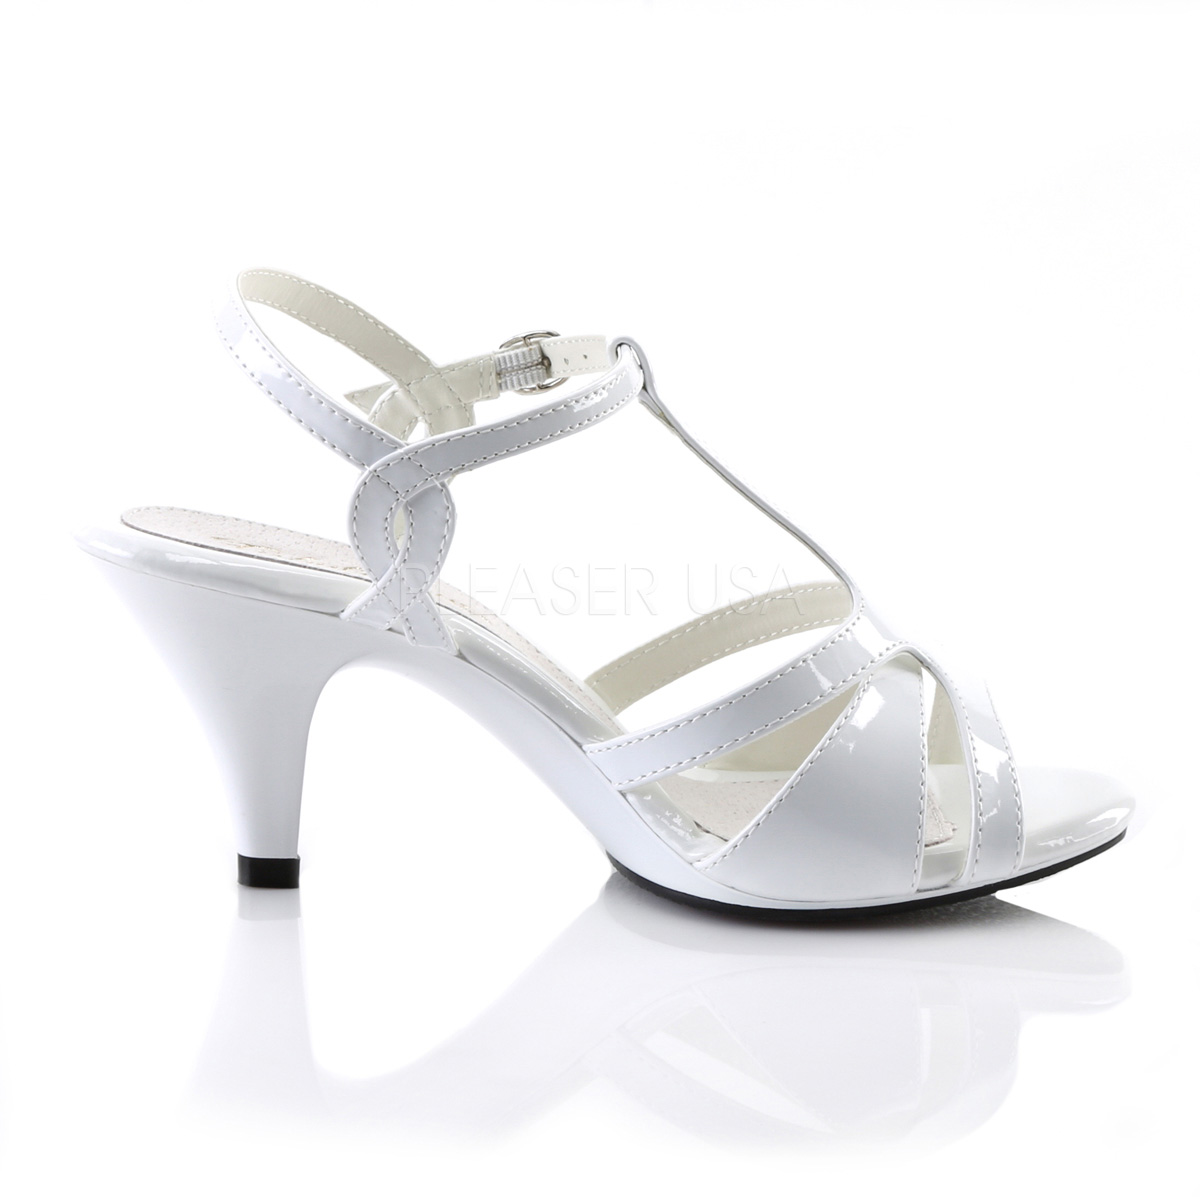 8 Sandals Belle 322 Heeled White Cm Fabulicious High v76bfYgy